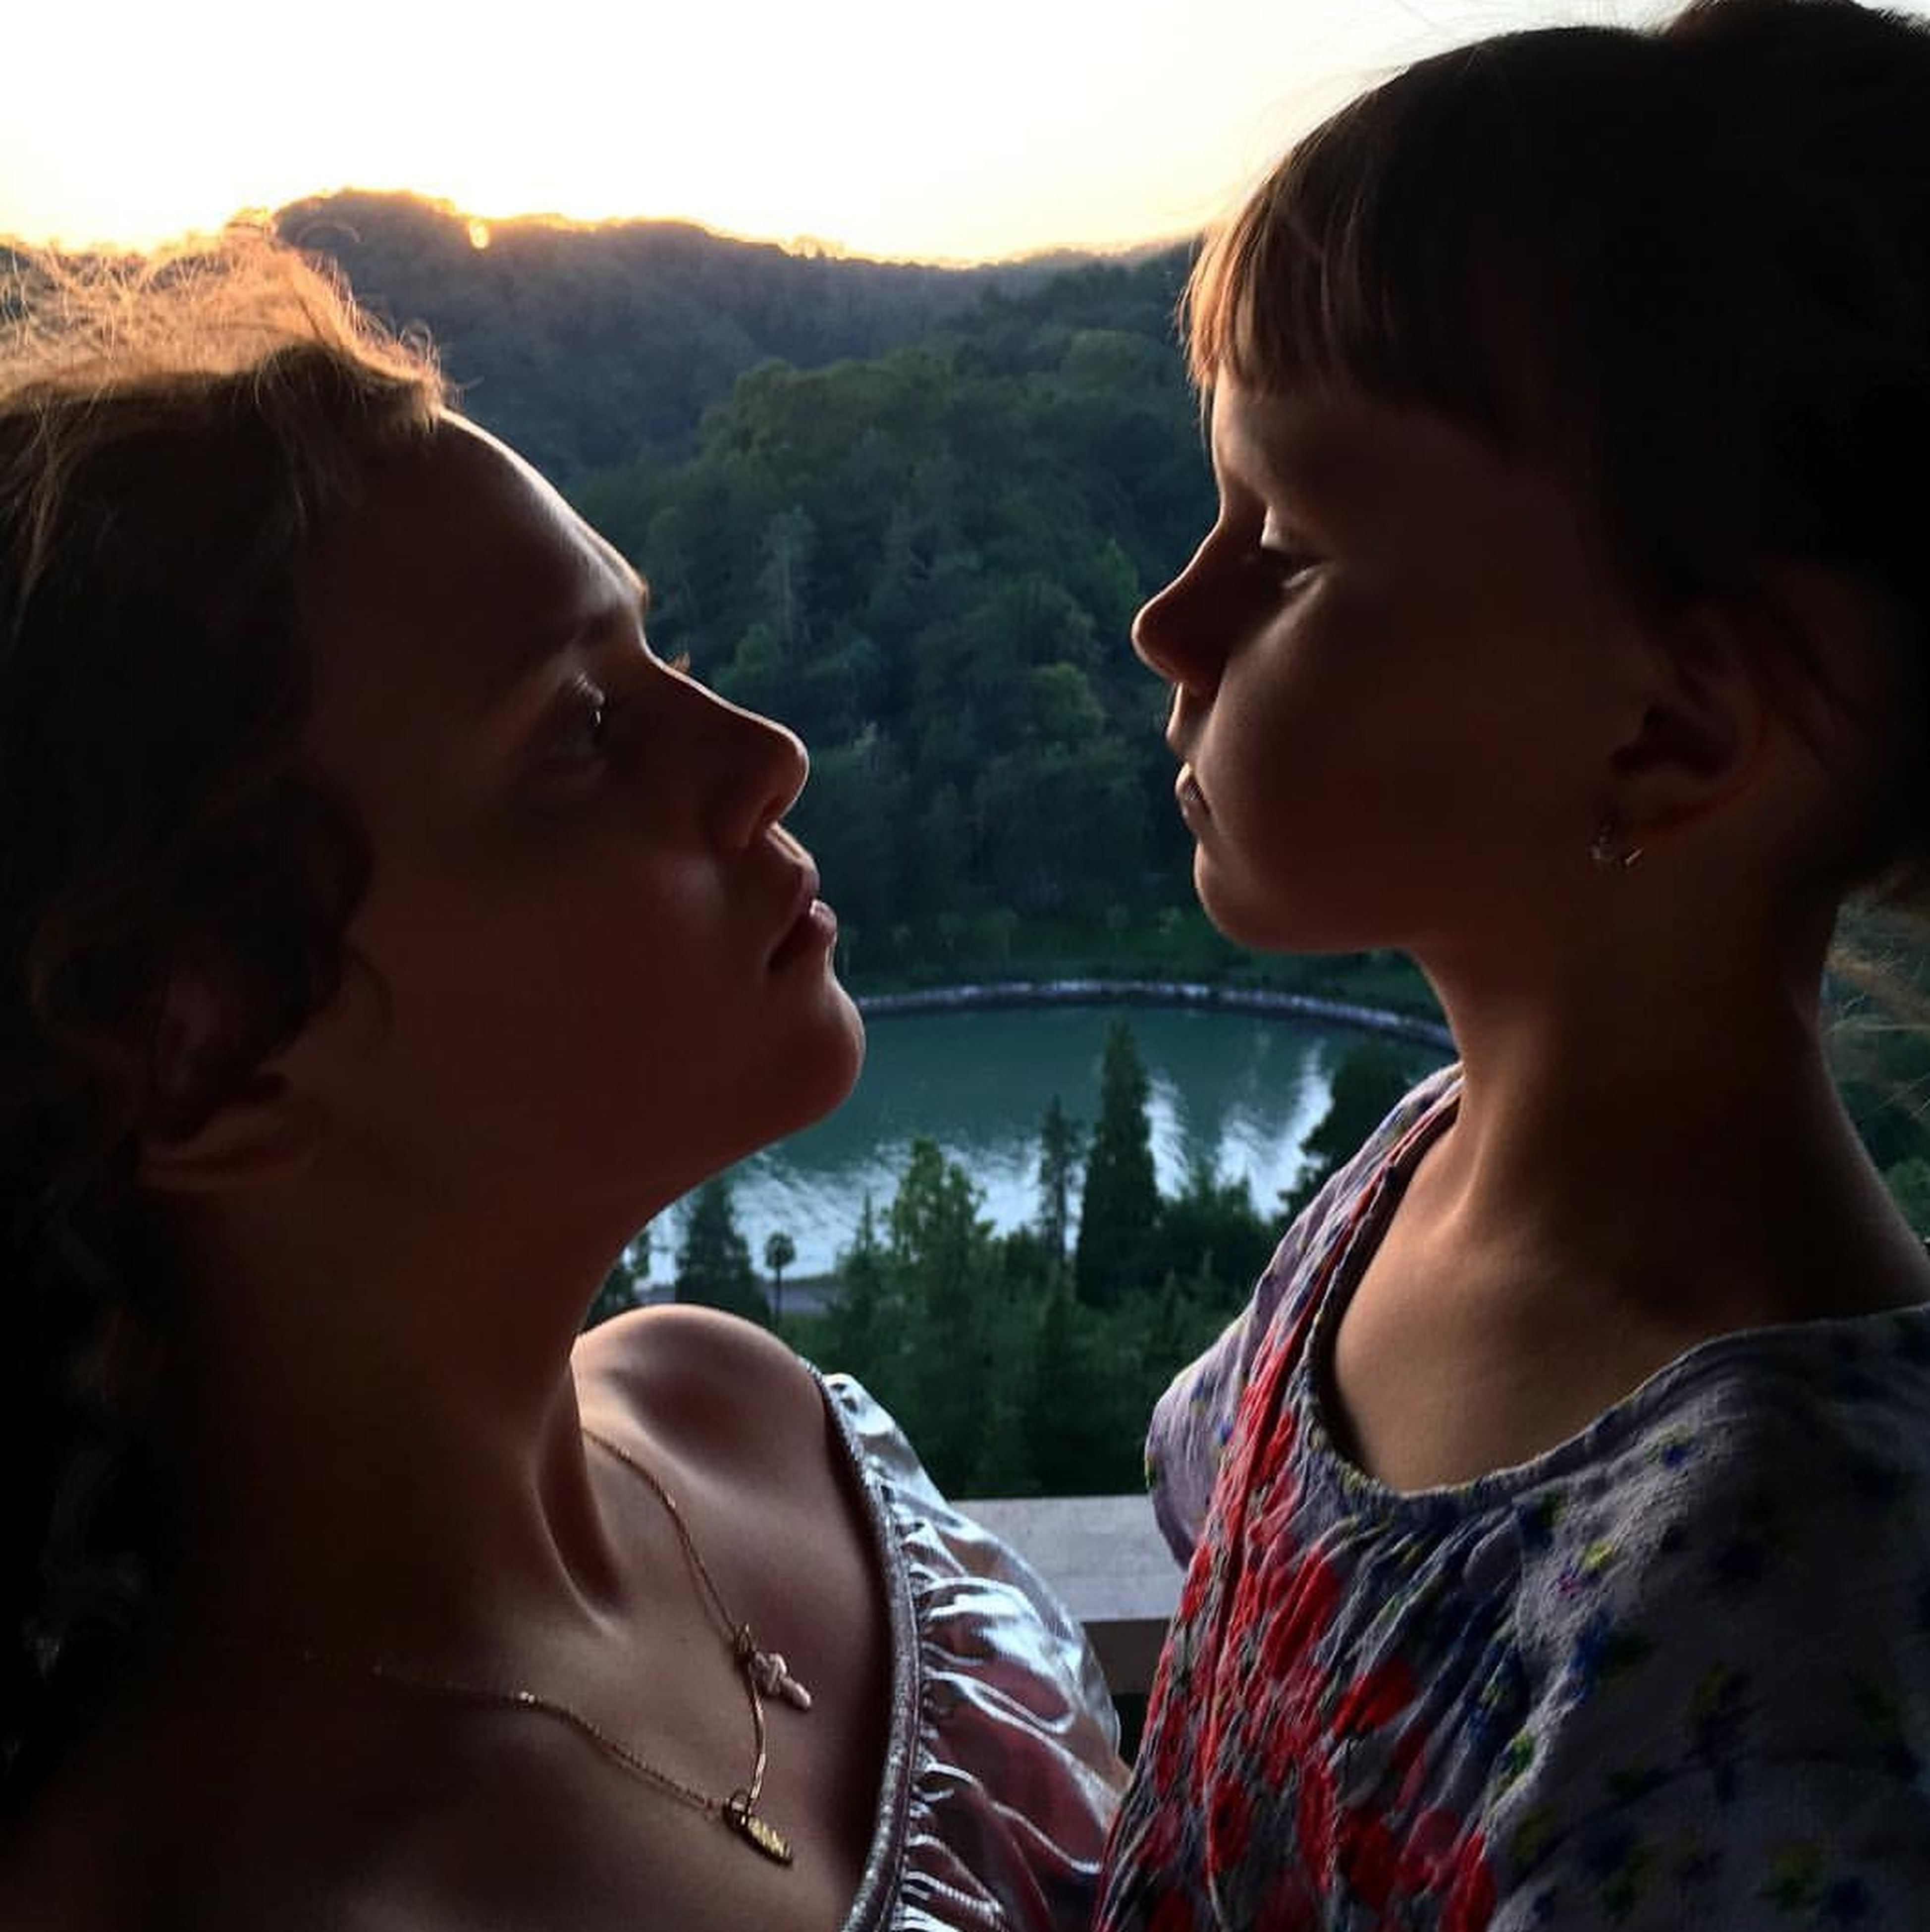 two people, togetherness, real people, love, mountain, young adult, young women, leisure activity, bonding, lifestyles, headshot, side view, beauty in nature, nature, outdoors, day, happiness, beautiful woman, tree, smiling, friendship, water, close-up, sky, adult, people